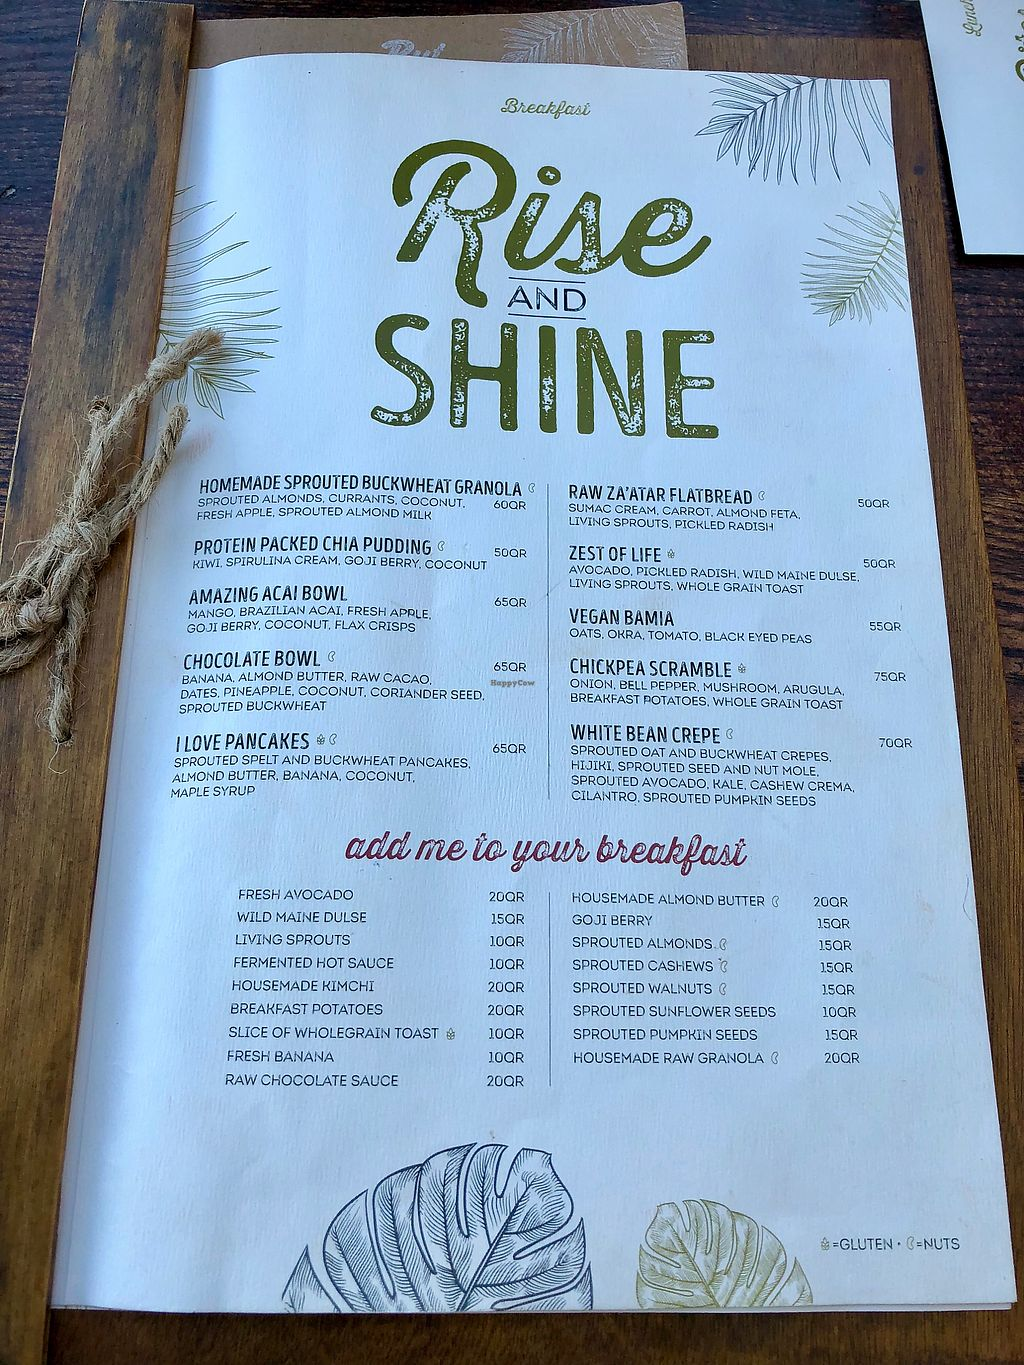 "Photo of Evergreen Organics  by <a href=""/members/profile/RayB"">RayB</a> <br/>Breakfast menu  <br/> January 25, 2018  - <a href='/contact/abuse/image/74739/350690'>Report</a>"